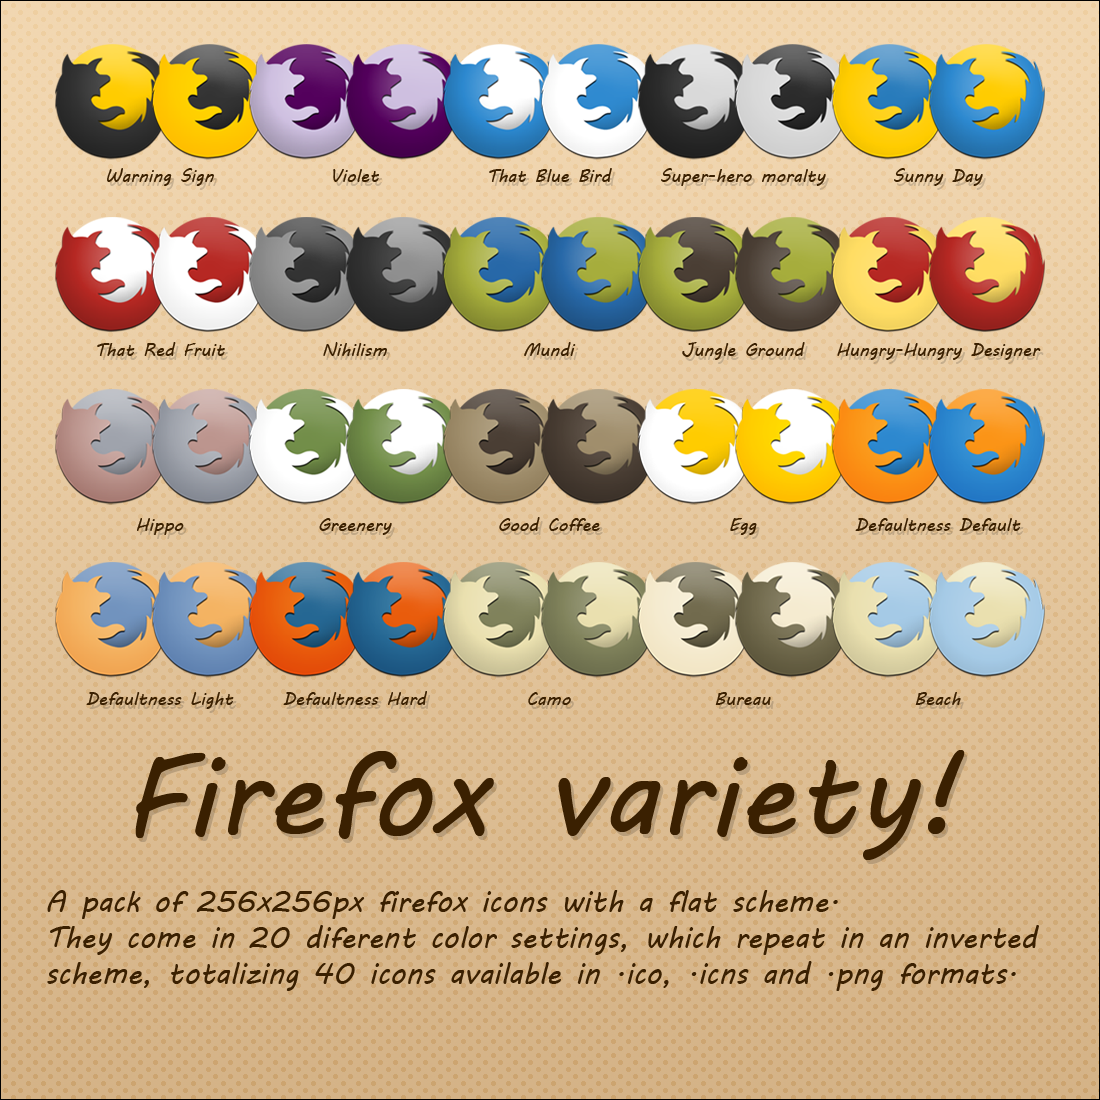 Variety - A firefox icon pack by Berstarke on DeviantArt